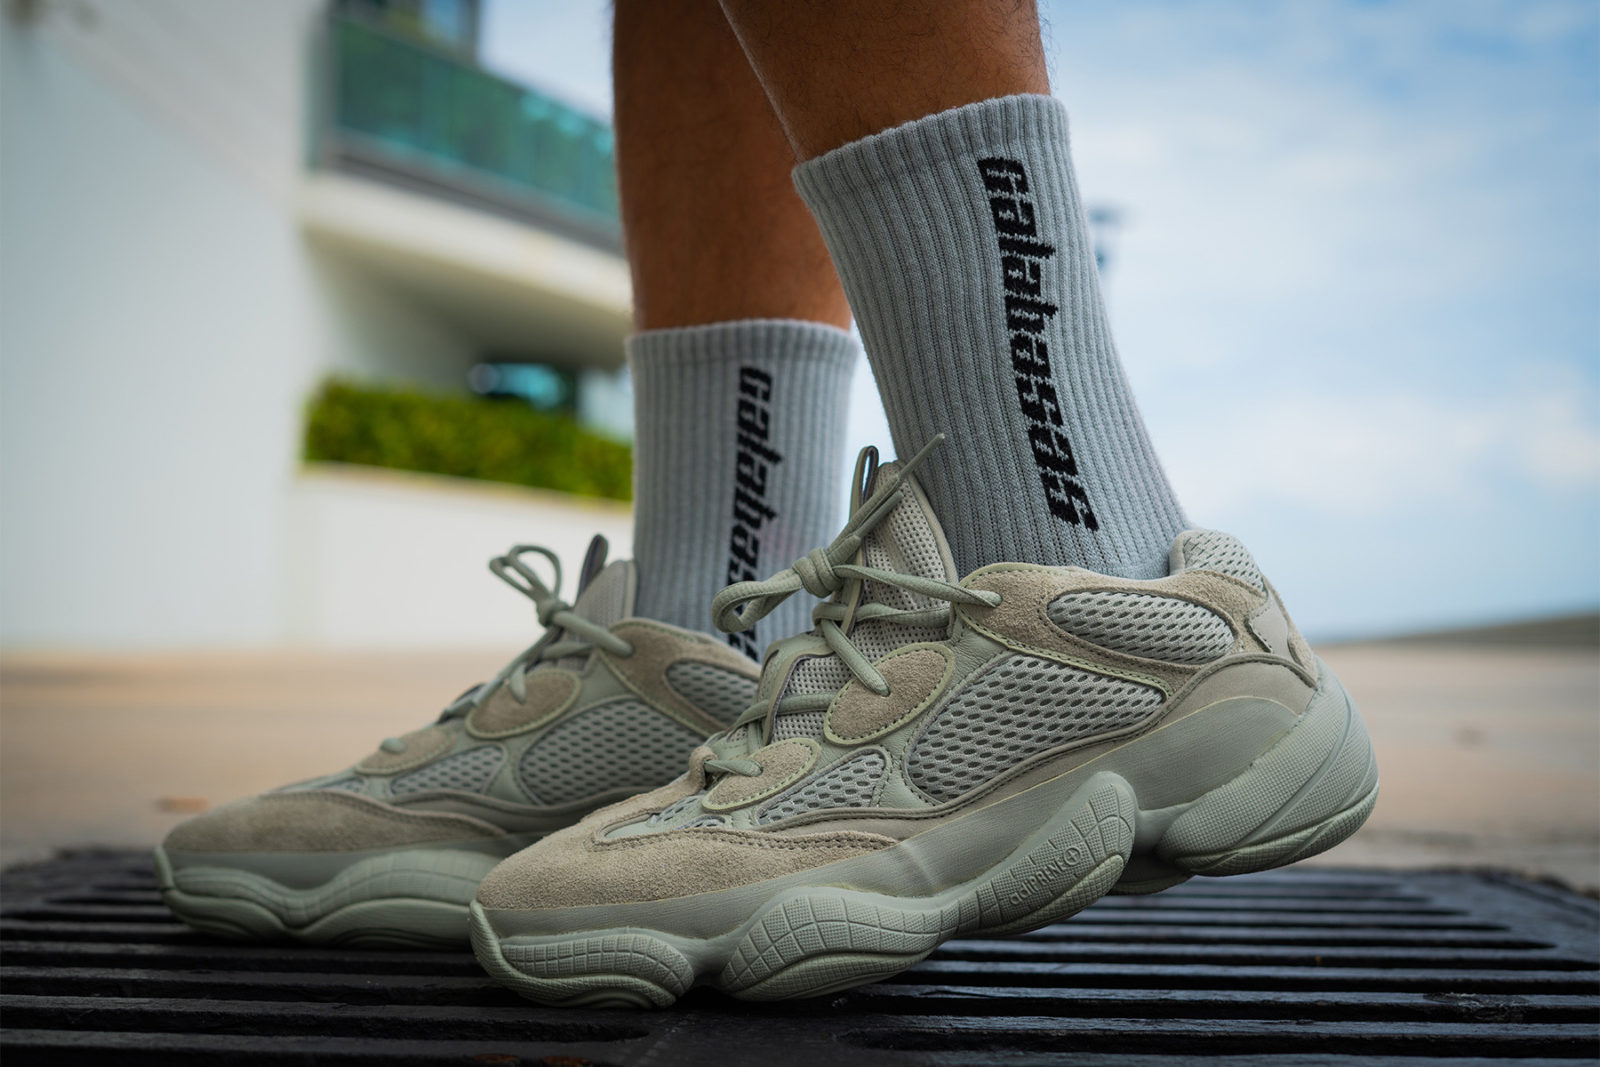 cms cdn.thesolesupplier.co.uk201809https_ 2Fimage2F20182F092Fadidas yeezy 500 salt on foot 1 1600x1067.jpg